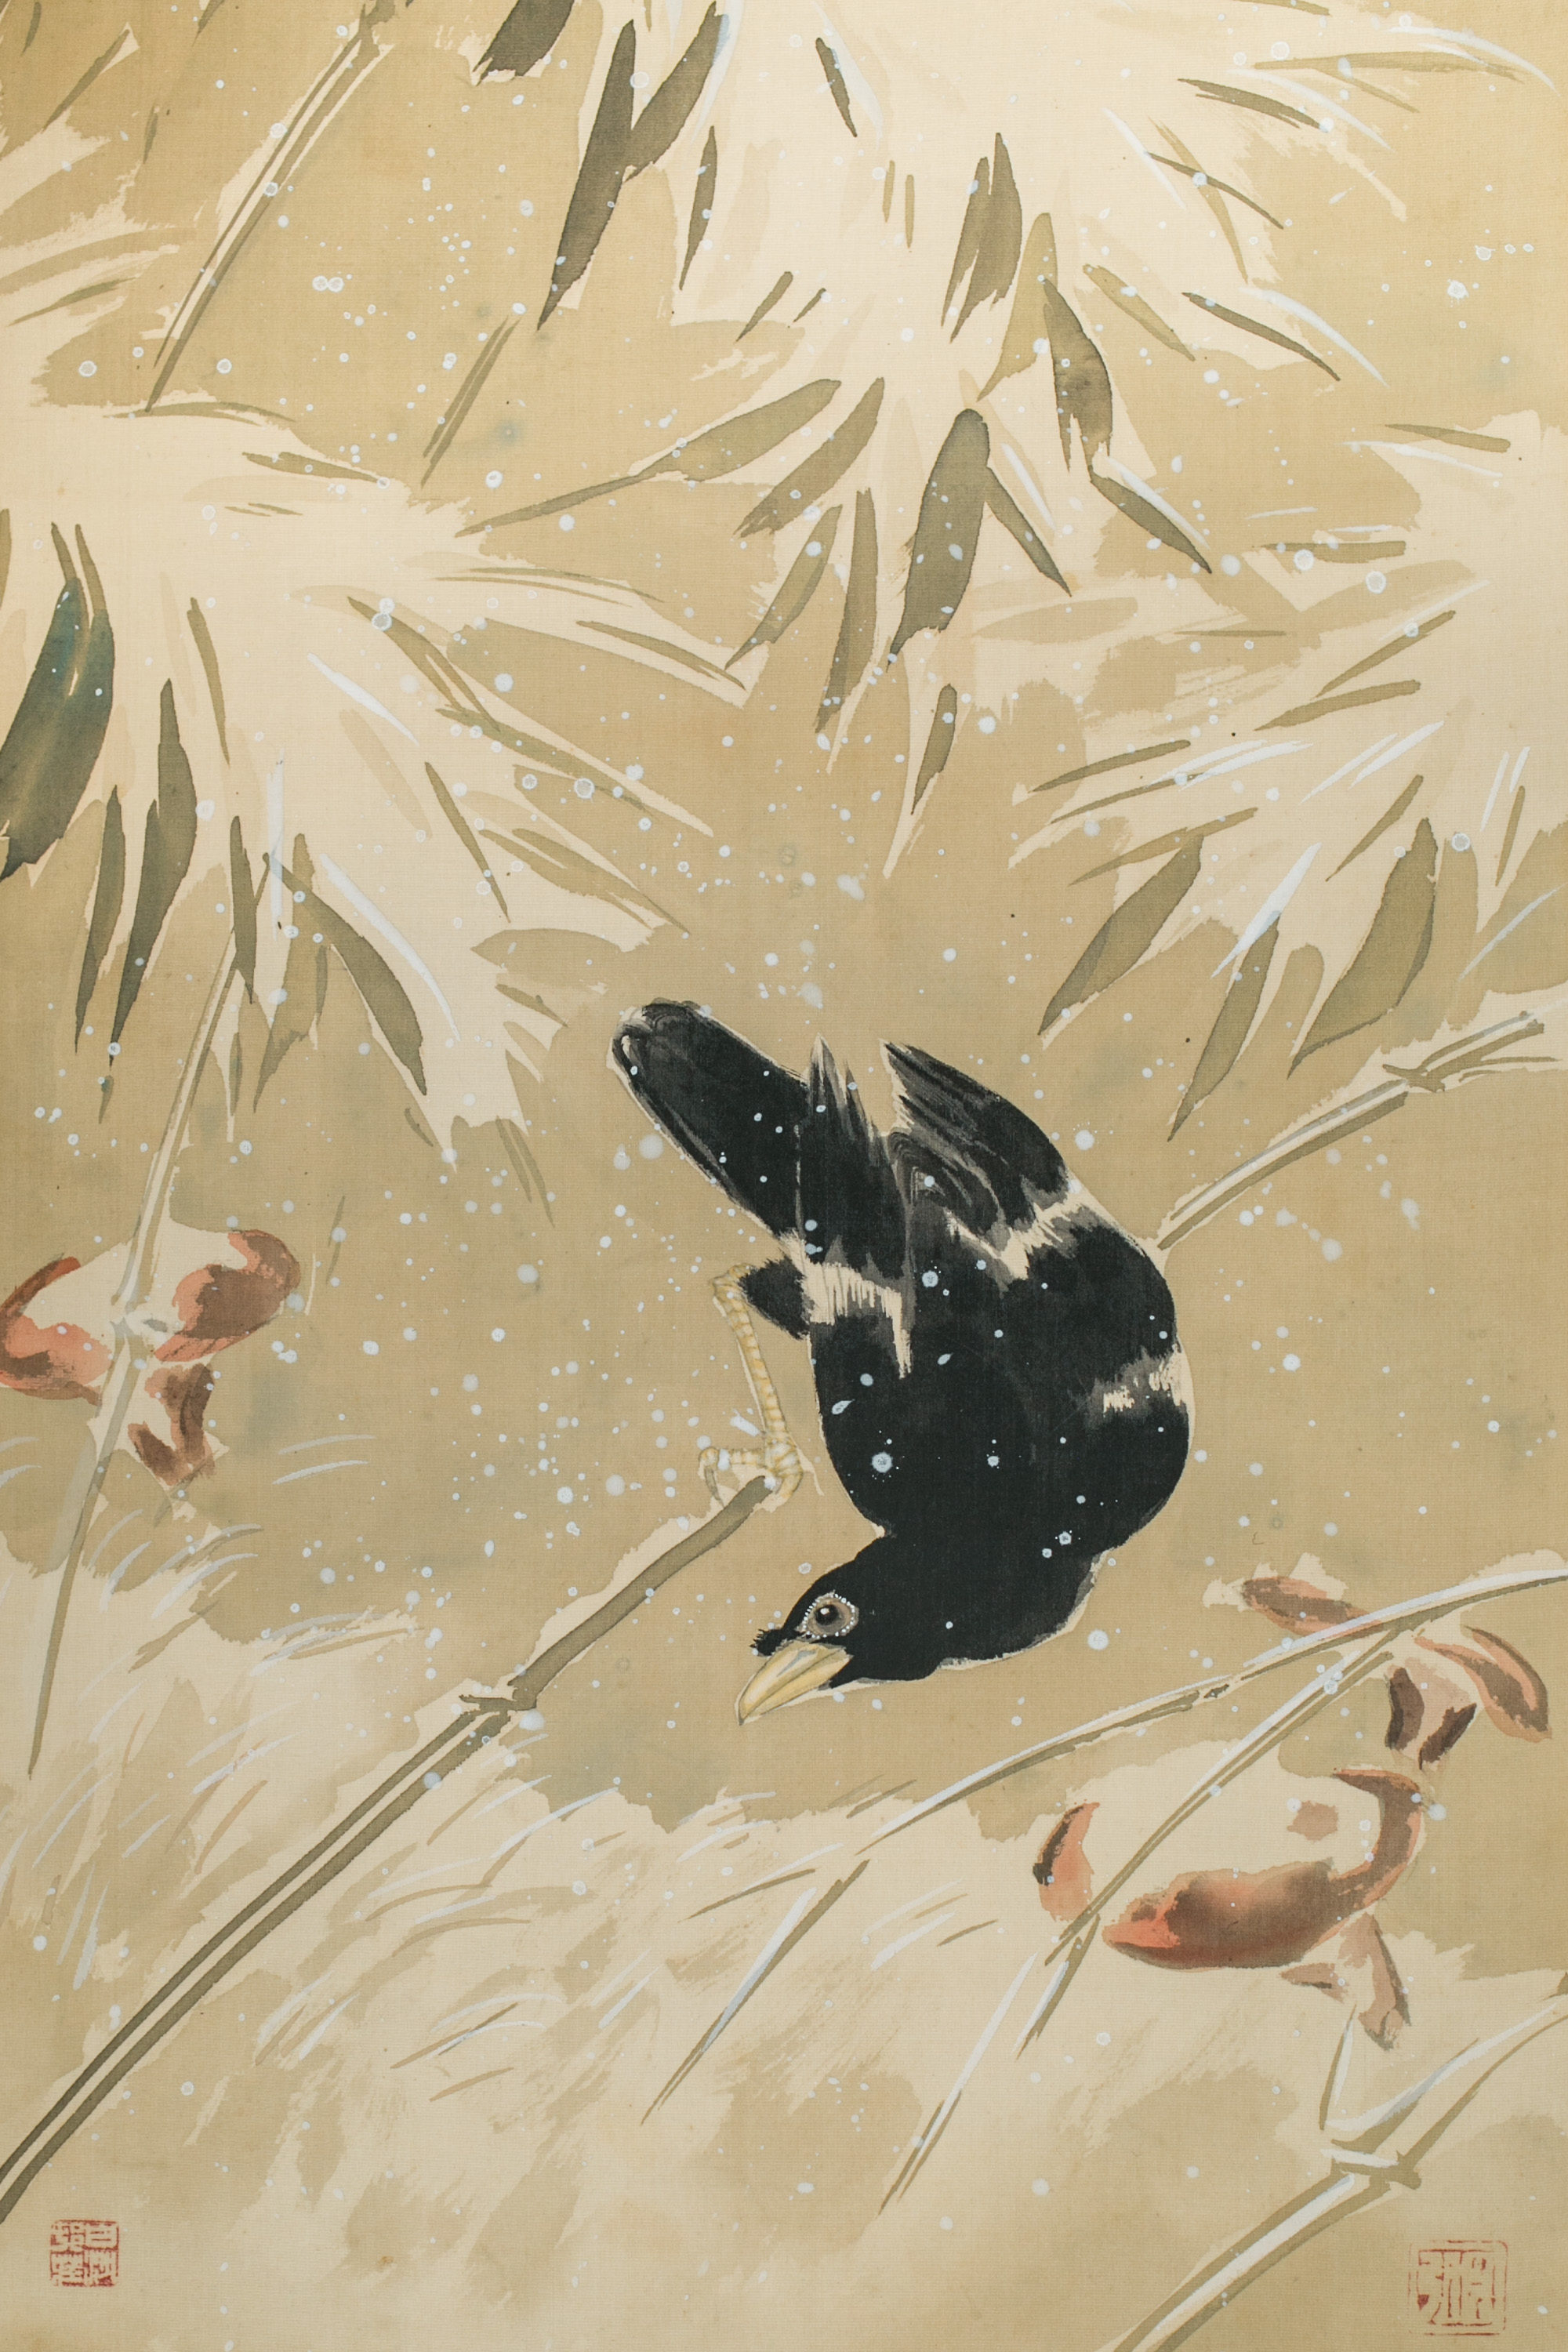 Antique Japanese Scroll: Crows in Snowy Landscape